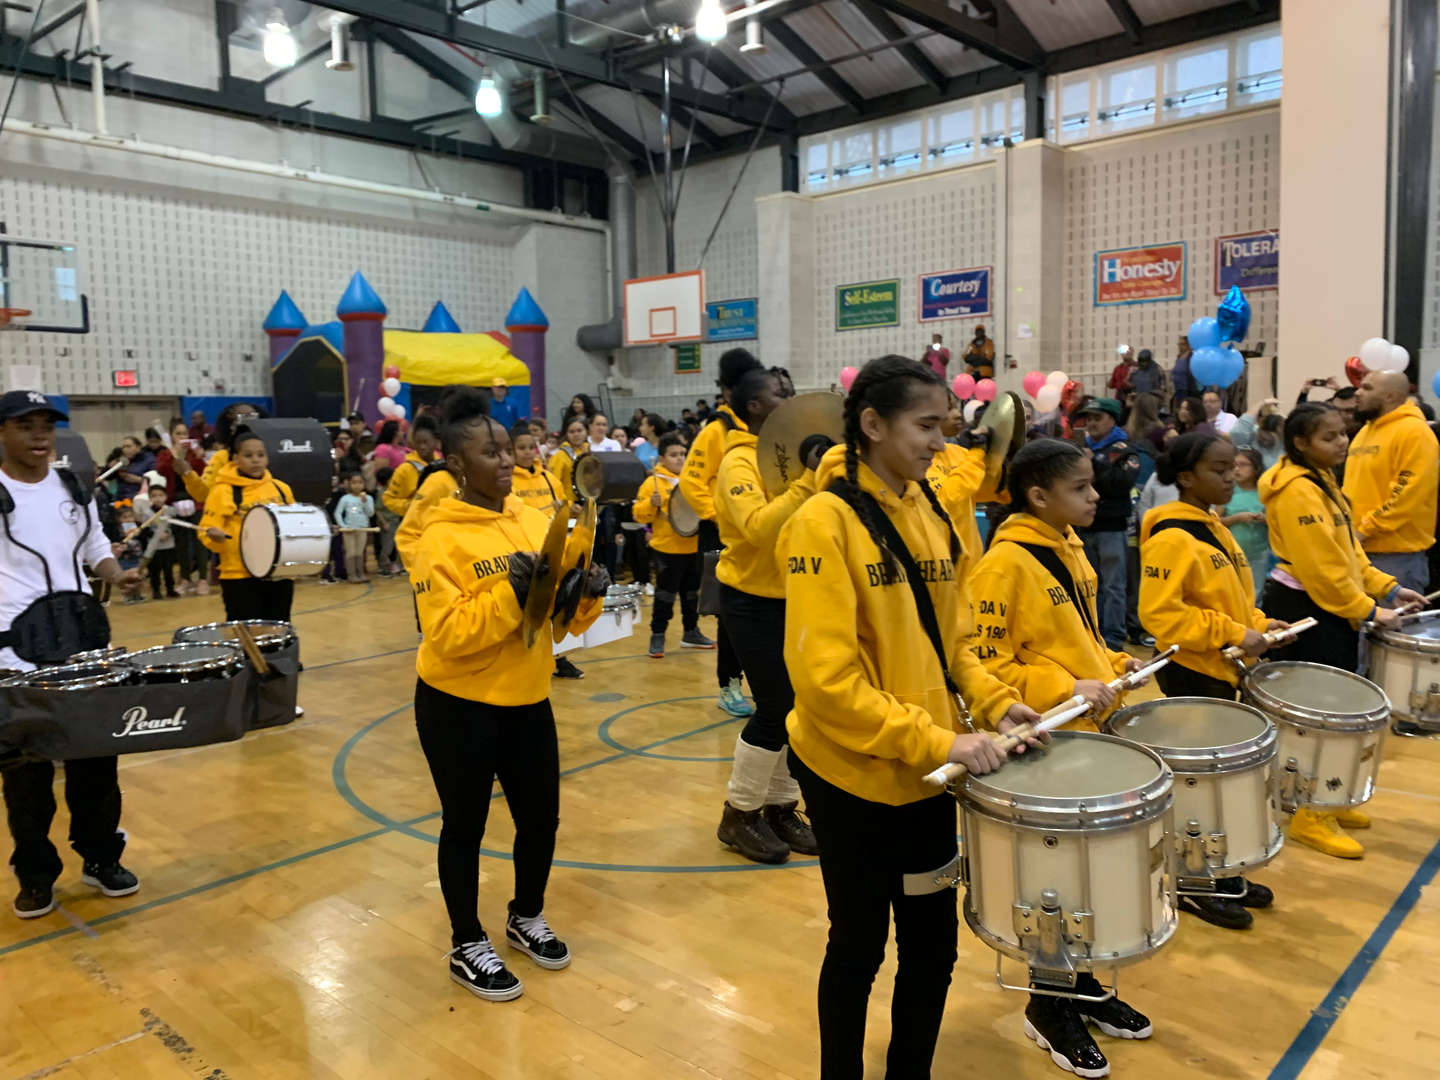 A marching band of students plays wearing matching yellow jackets